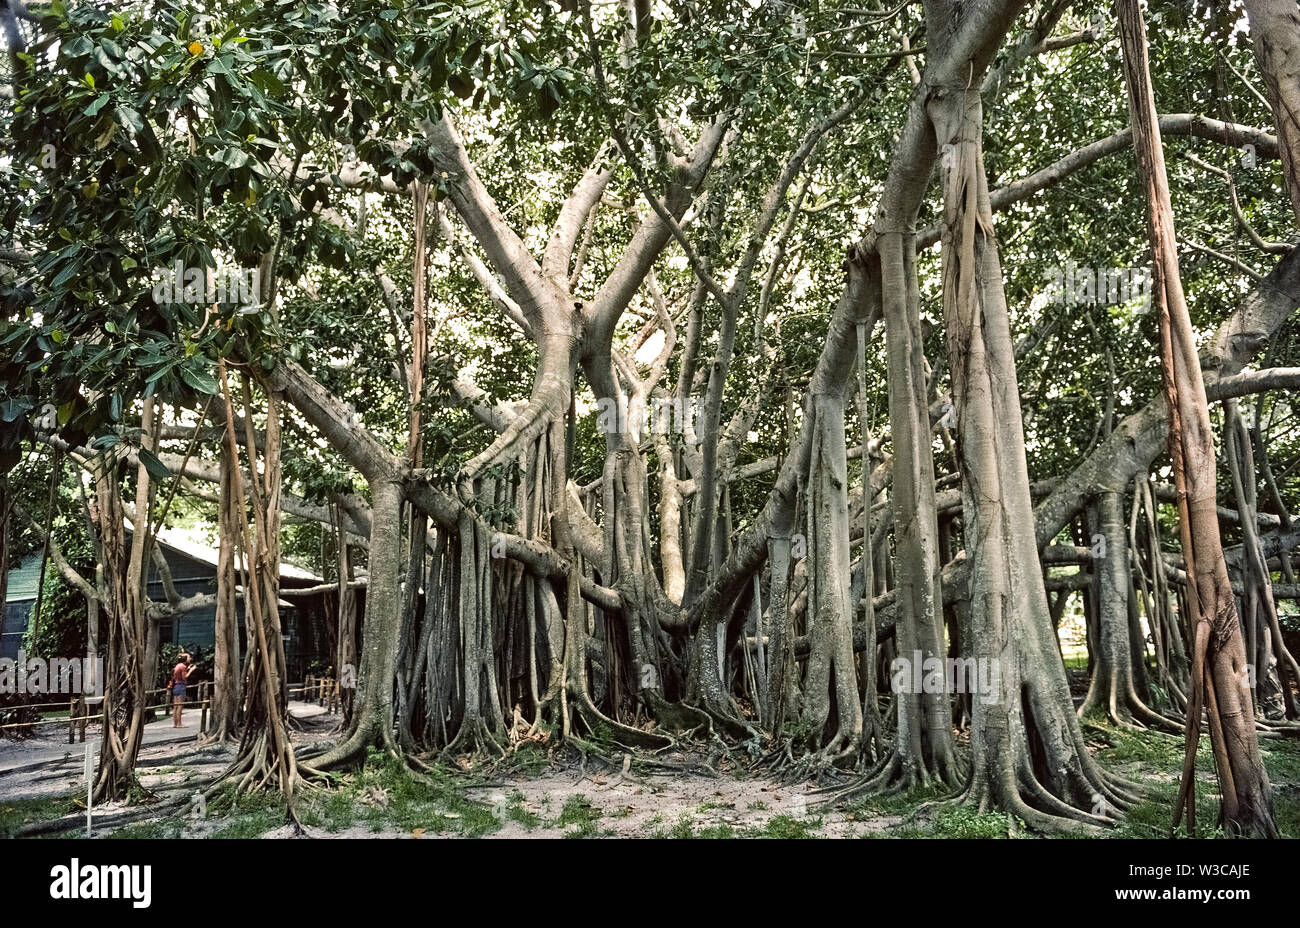 This enormous banyan tree (Ficus benghalensis) was only 4 feet (1.2 meters) tall when planted in 1925 by famed American inventor Thomas Alva Edison at his winter estate in Fort Myers, Florida, USA. Native to India and a member of the fig family, it was the first banyan tree planted in the continental United States. Over the years aerial roots have grown down from its branches to expand the area covered by the tree to more than 1 acre (0.41 hectares). The banyan is a feature of vast botanical gardens that are part of Edison's 1880s winter home and laboratory open year-round to visitors. - Stock Image